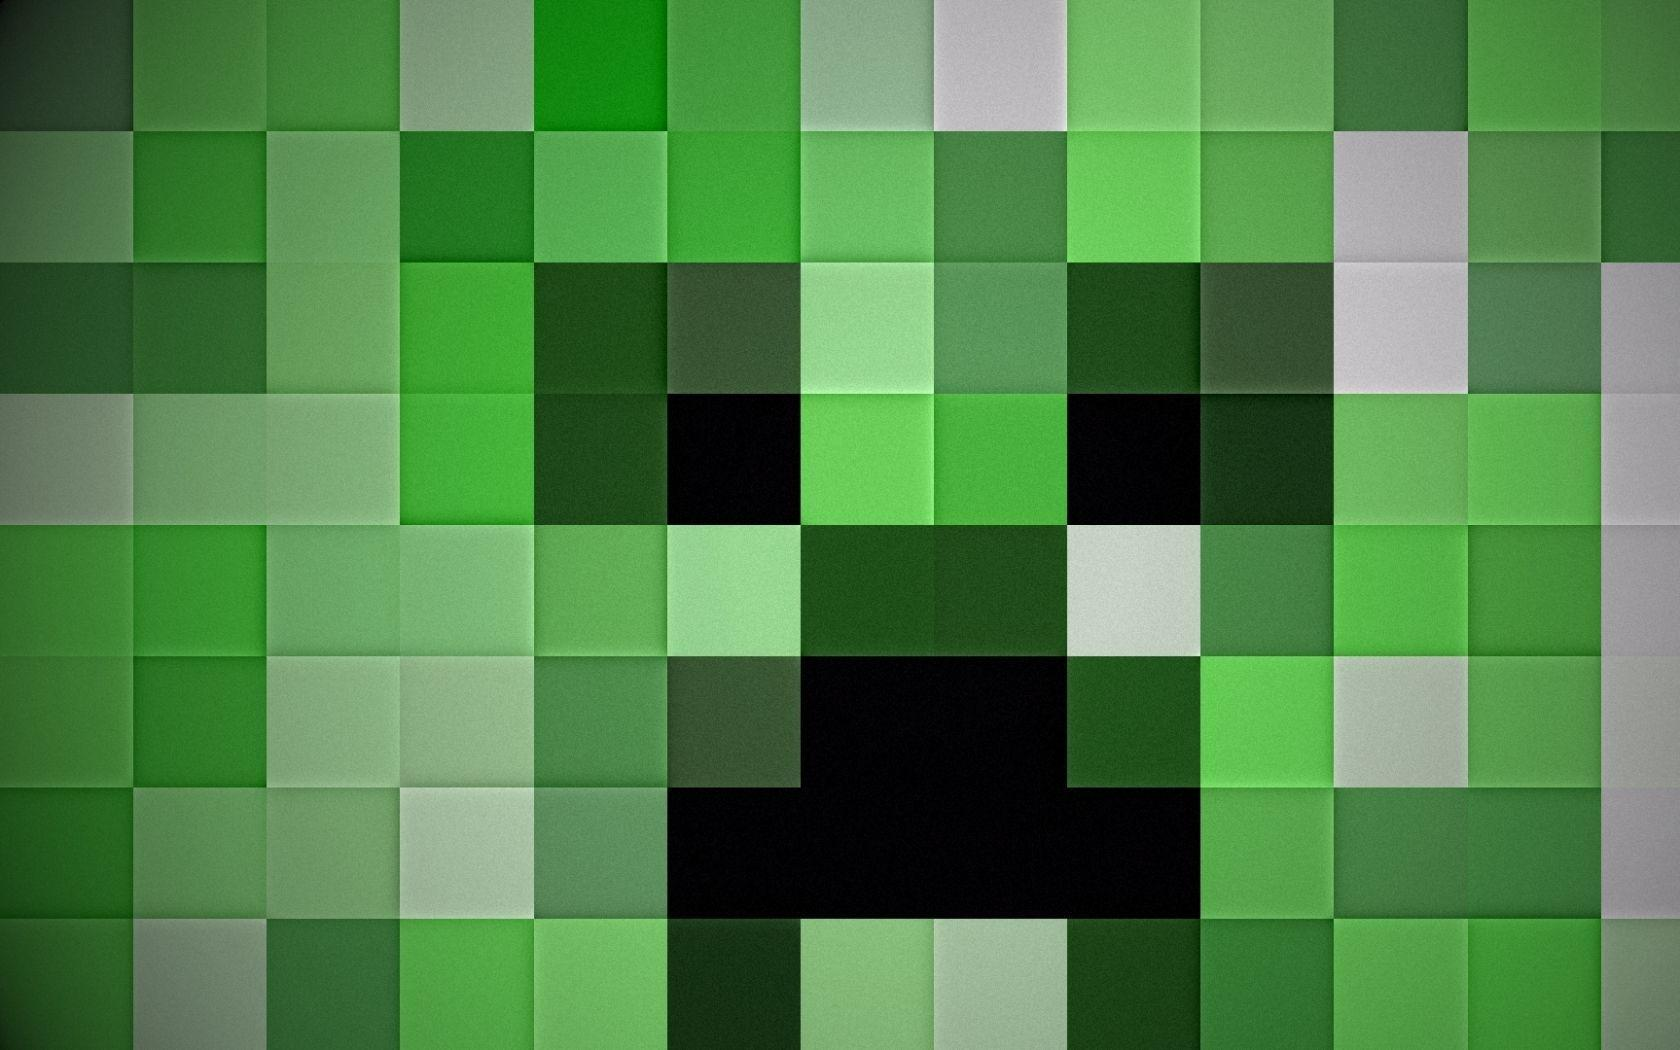 Wallpapers For > Minecraft Creeper Wallpaper 1920x1080